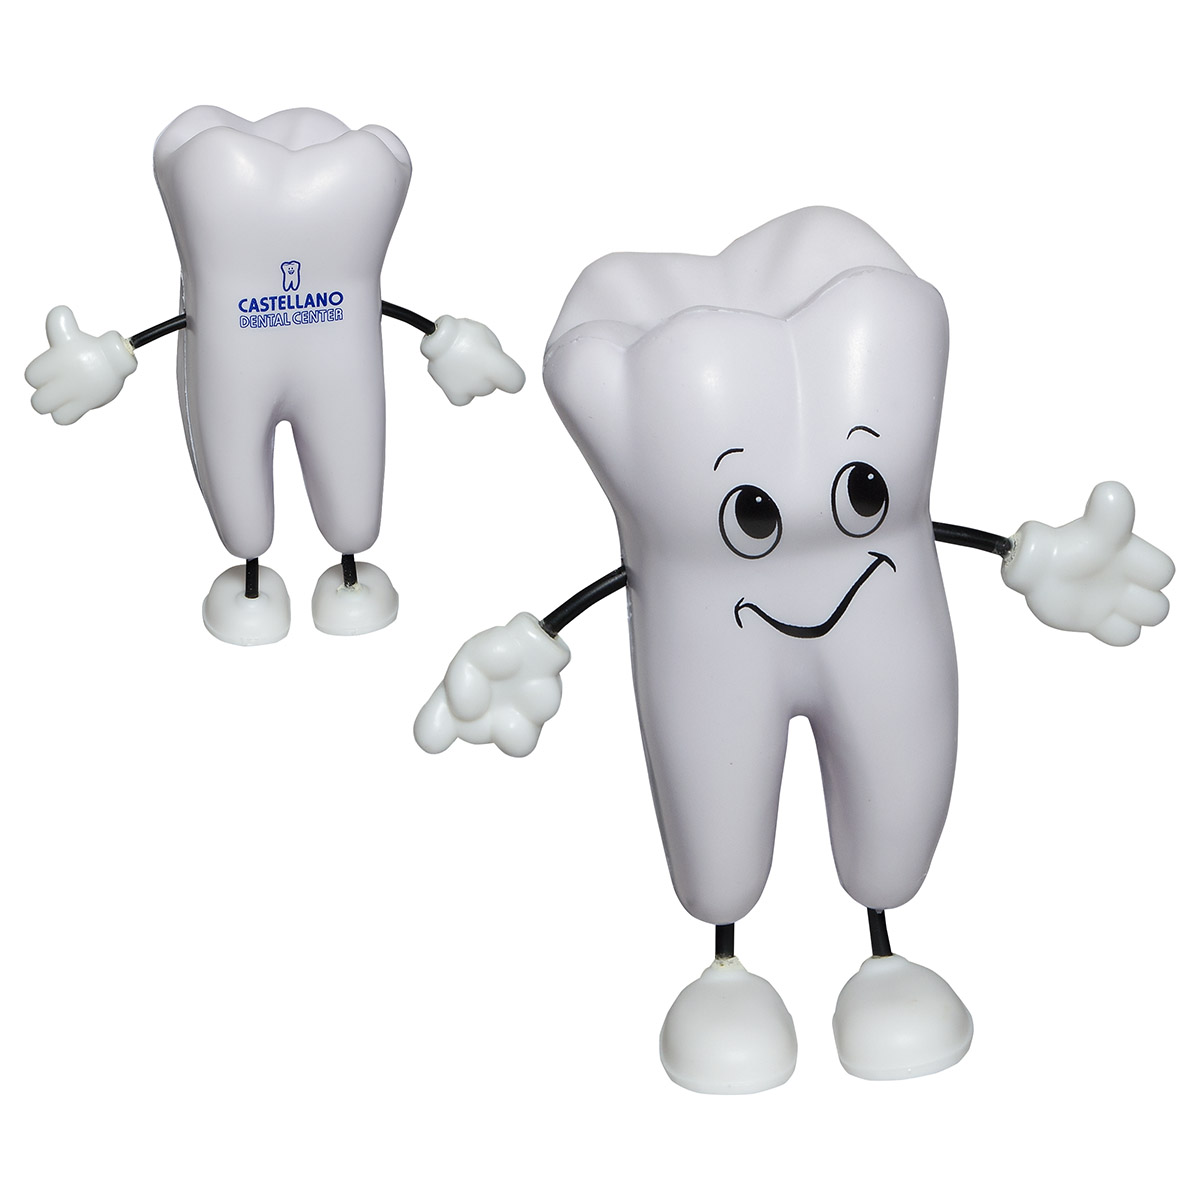 Tooth Stress Reliever Figure, LCH-TT17, 1 Colour Imprint